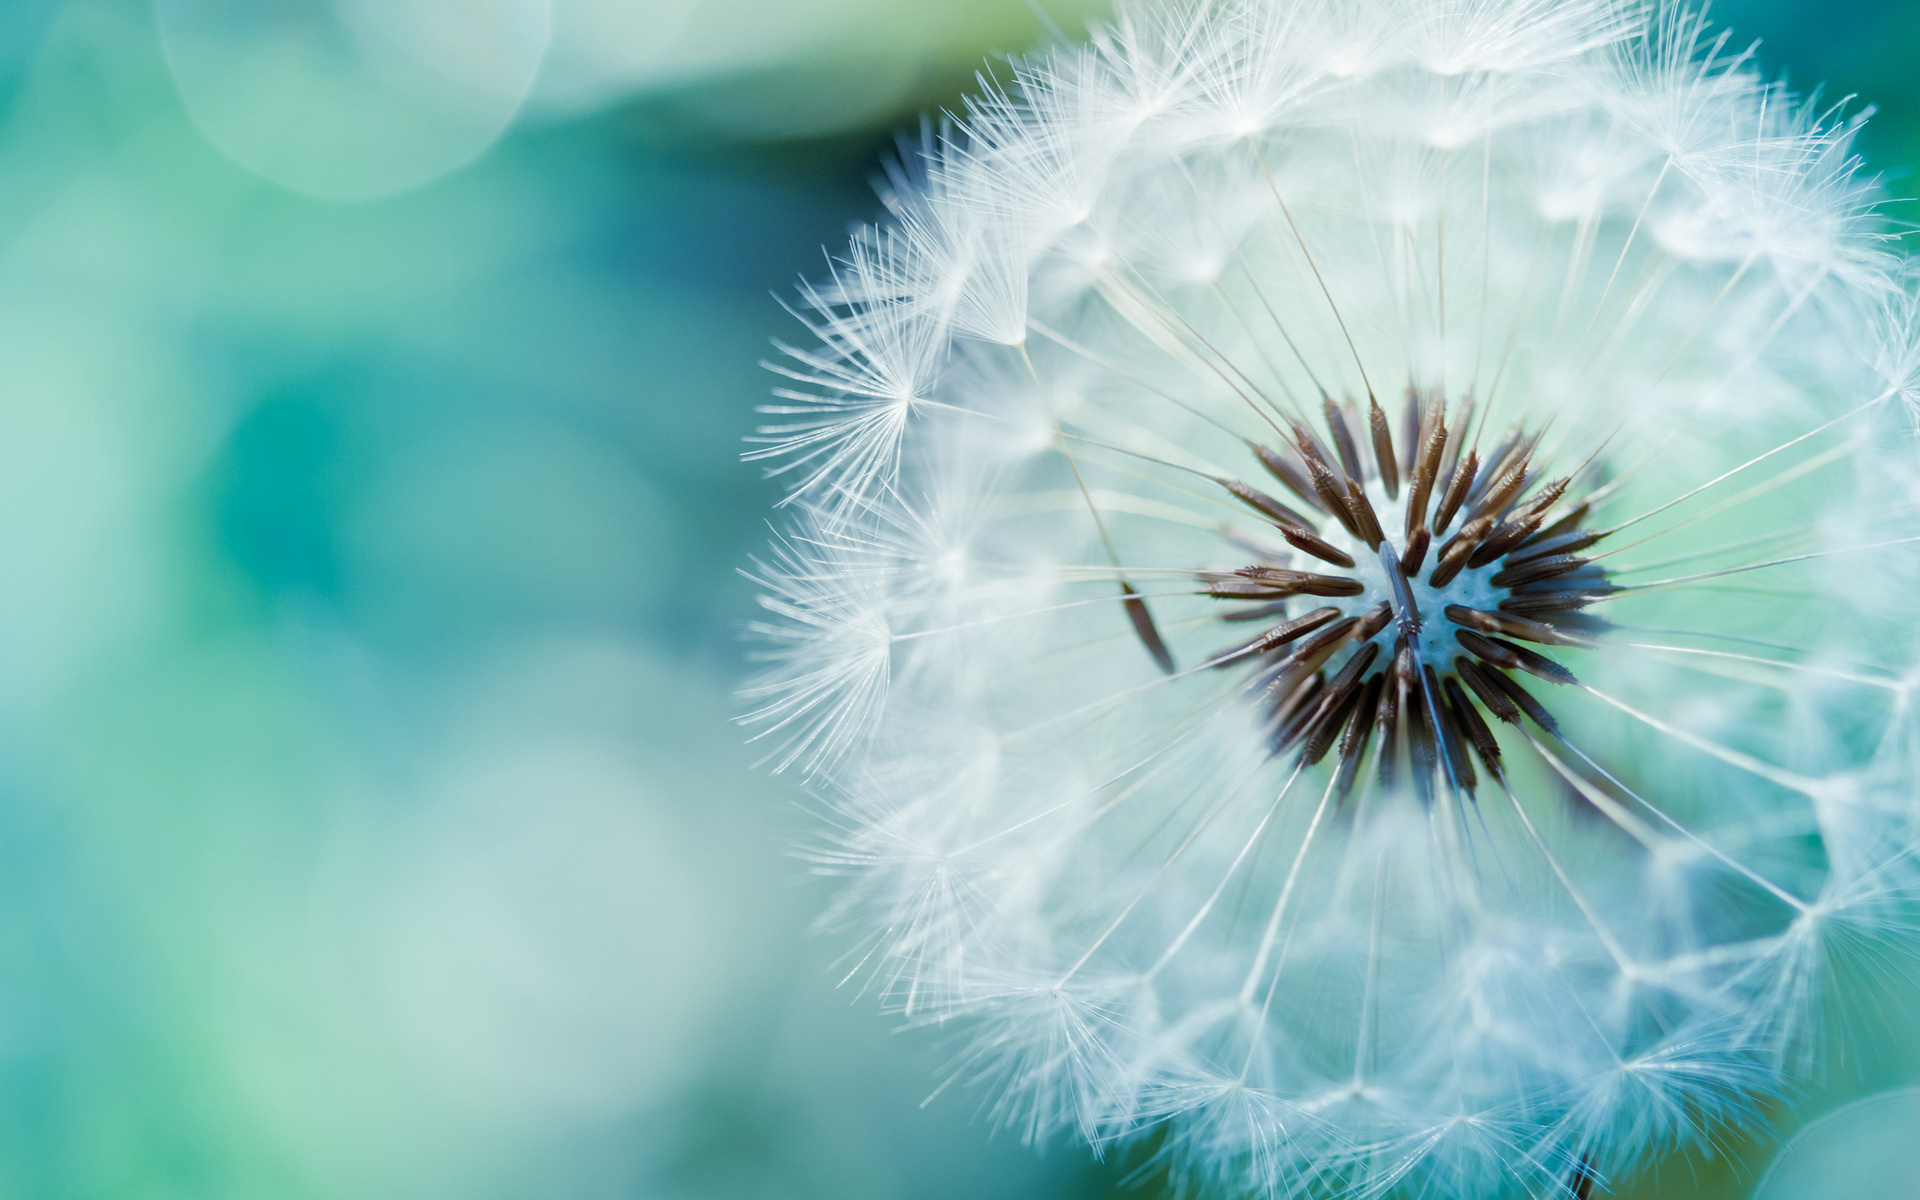 Dandelion Flower Wallpapers | HD Wallpapers